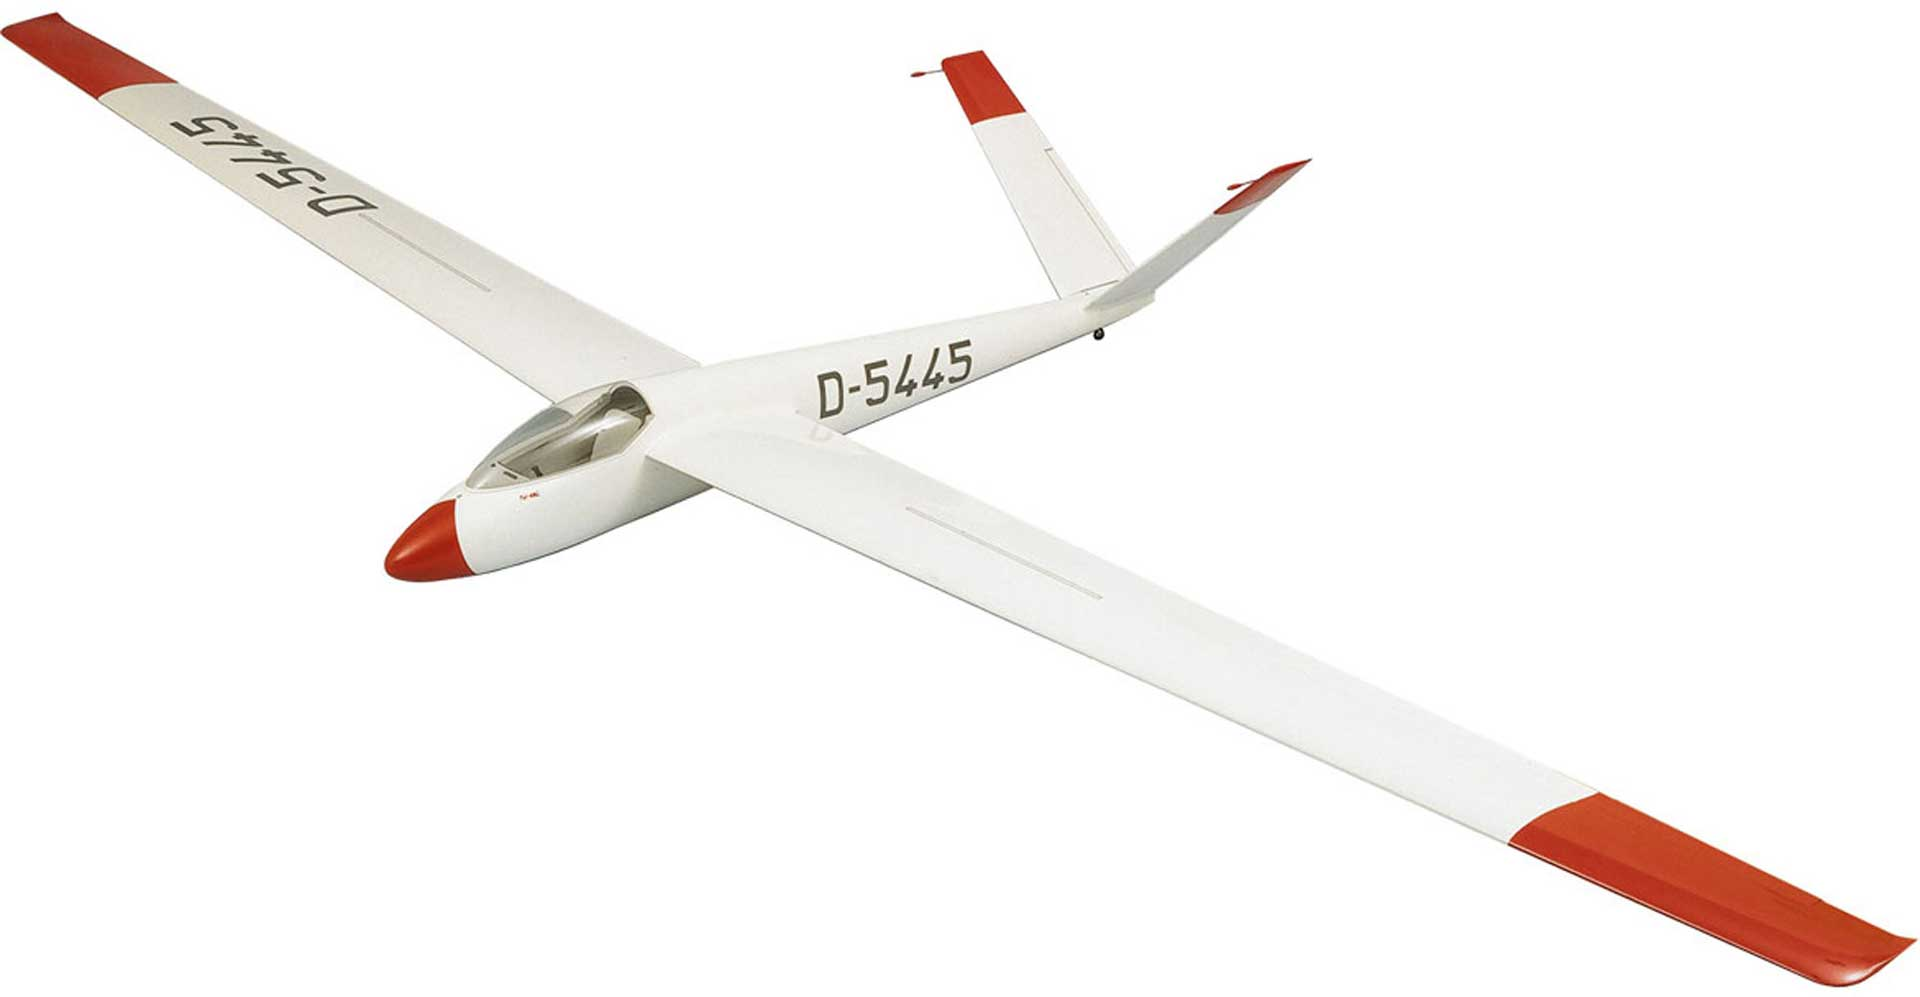 AERONAUT SHK KIT WITH WOOD RIBBED WINGS AND GRP FUSELAGE, GLIDER